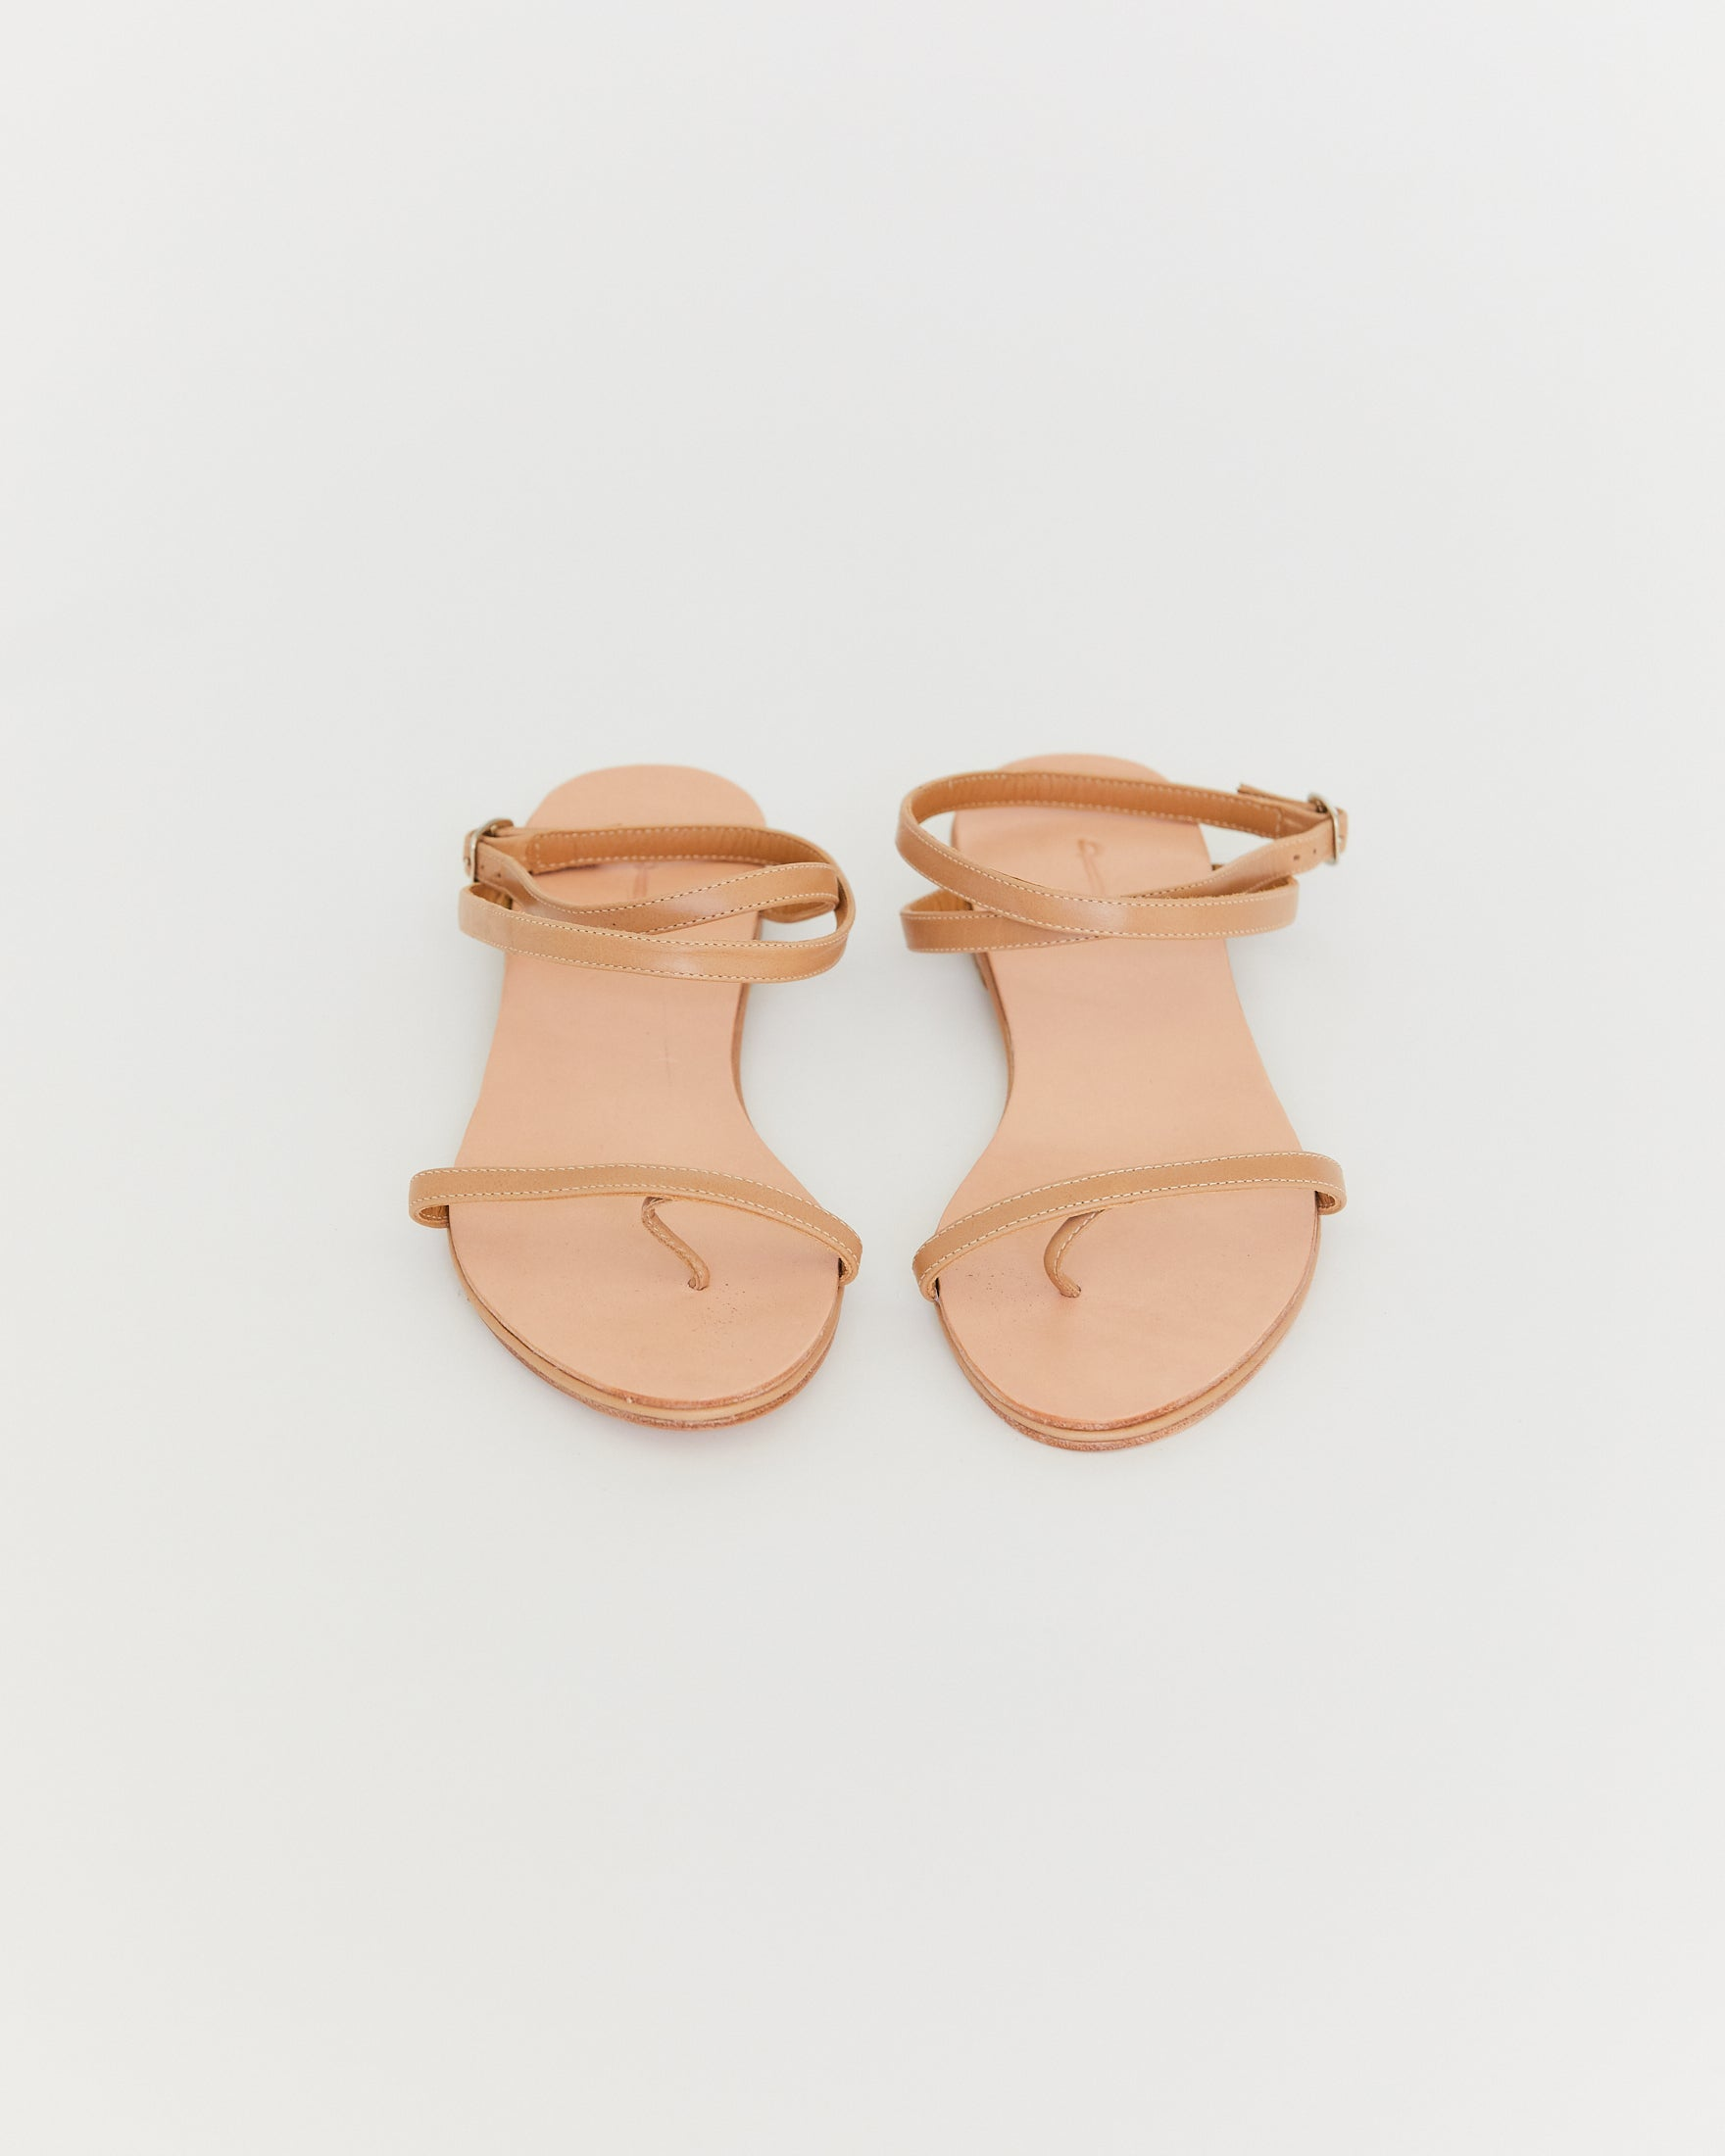 THE PALATINES - CALIDE SANDAL - TAN SMOOTH LEATHER